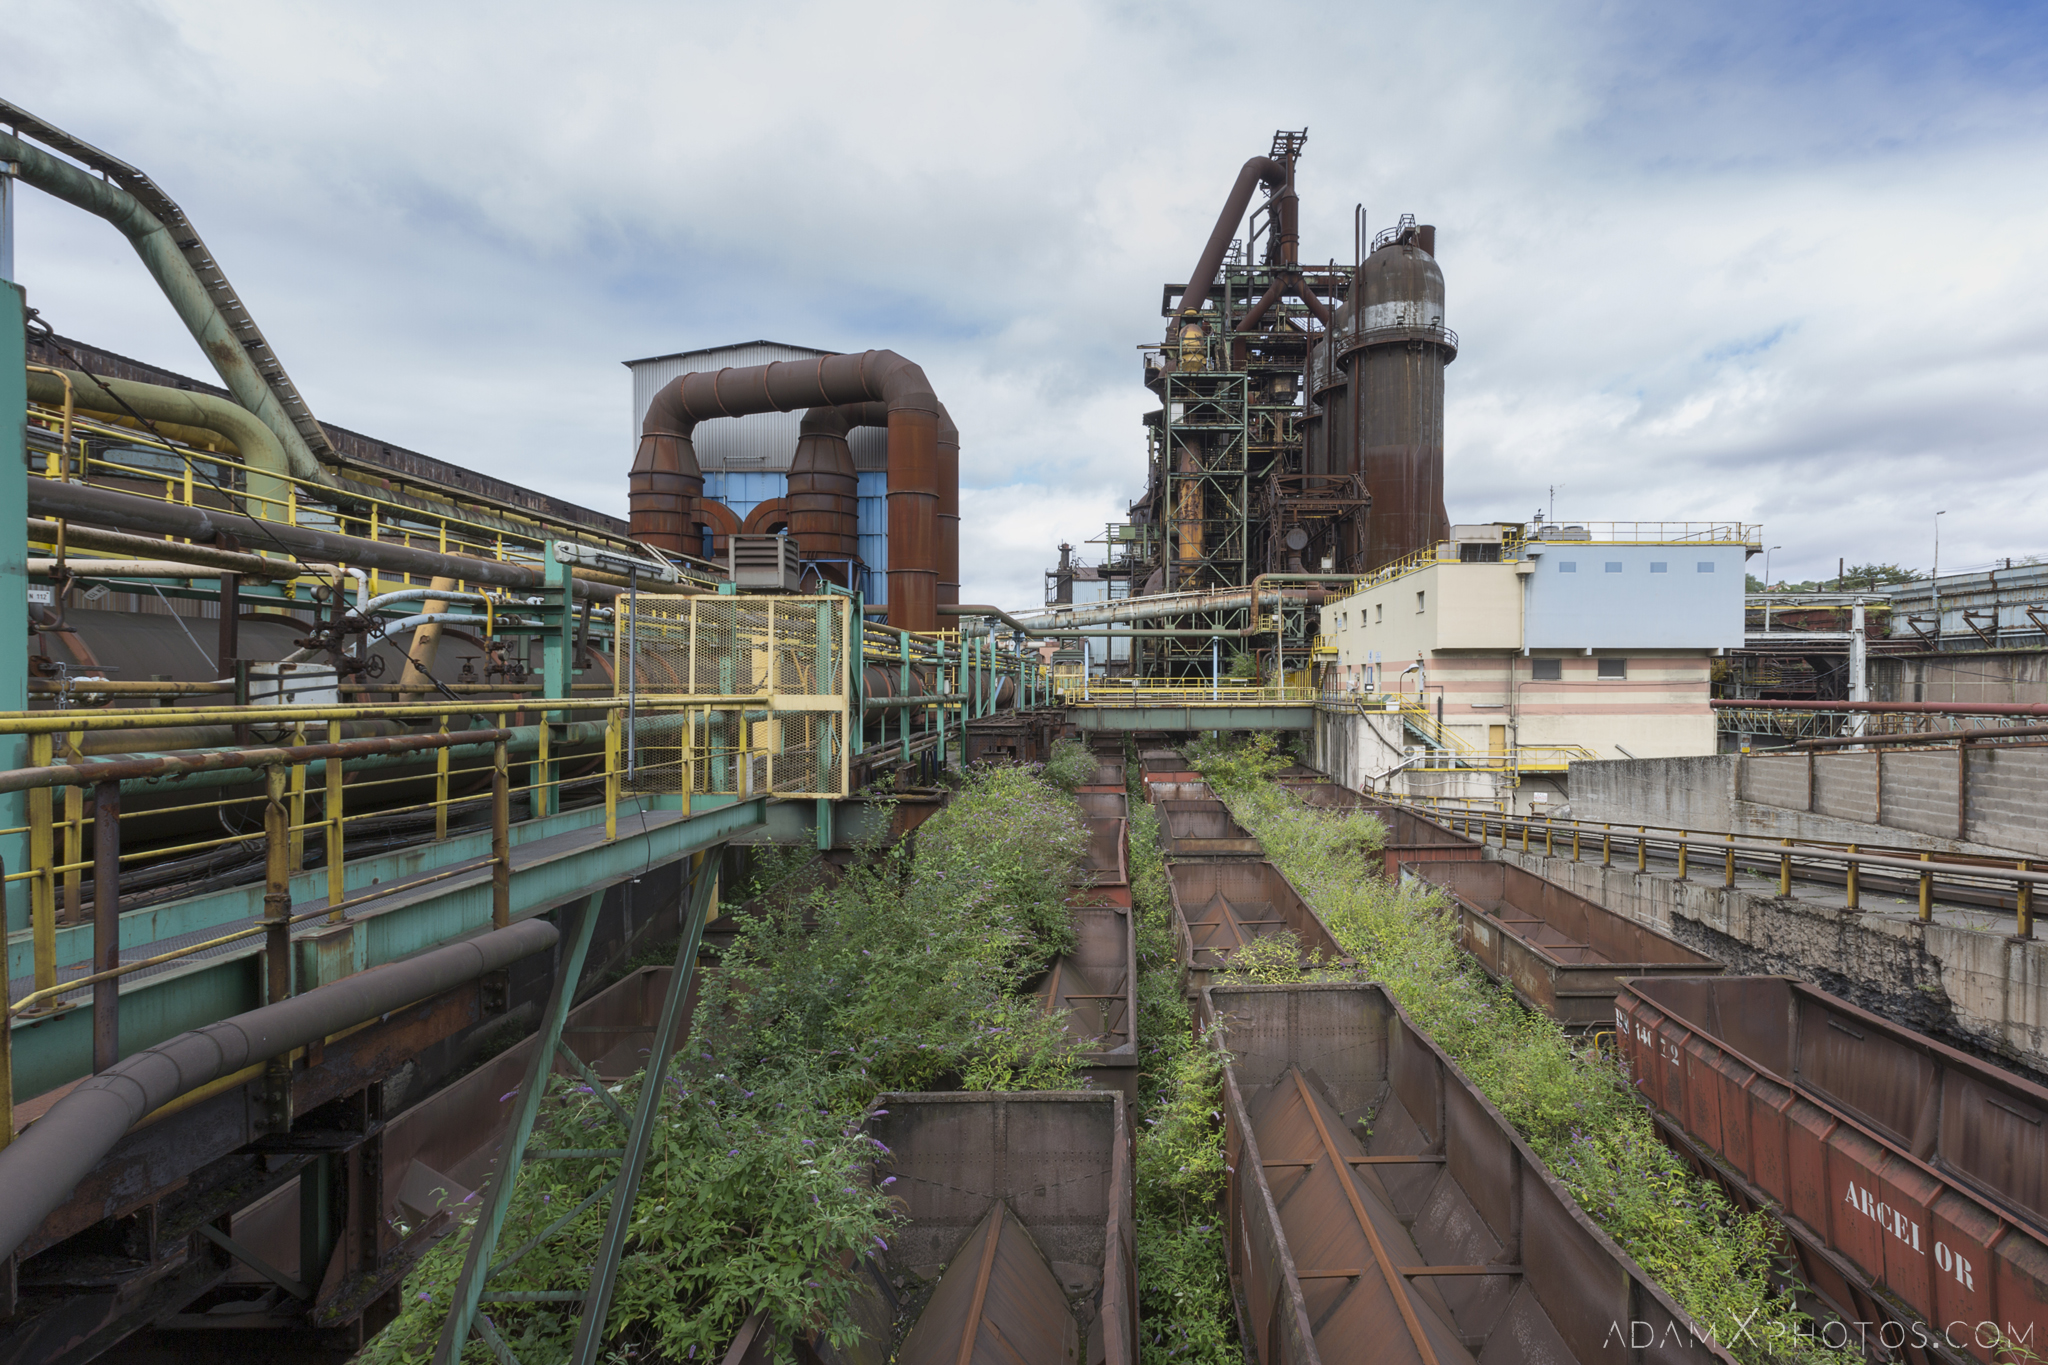 Overgrown railway sidings carriages blast furnace control room bottom of blast furnace P3 HFX Florange Hayange ArcelorMittal blast furnaces steel works plant Industrial Industry Adam X Urbex Urban Exploration France Access 2017 Abandoned decay lost forgotten derelict location creepy haunting eerie